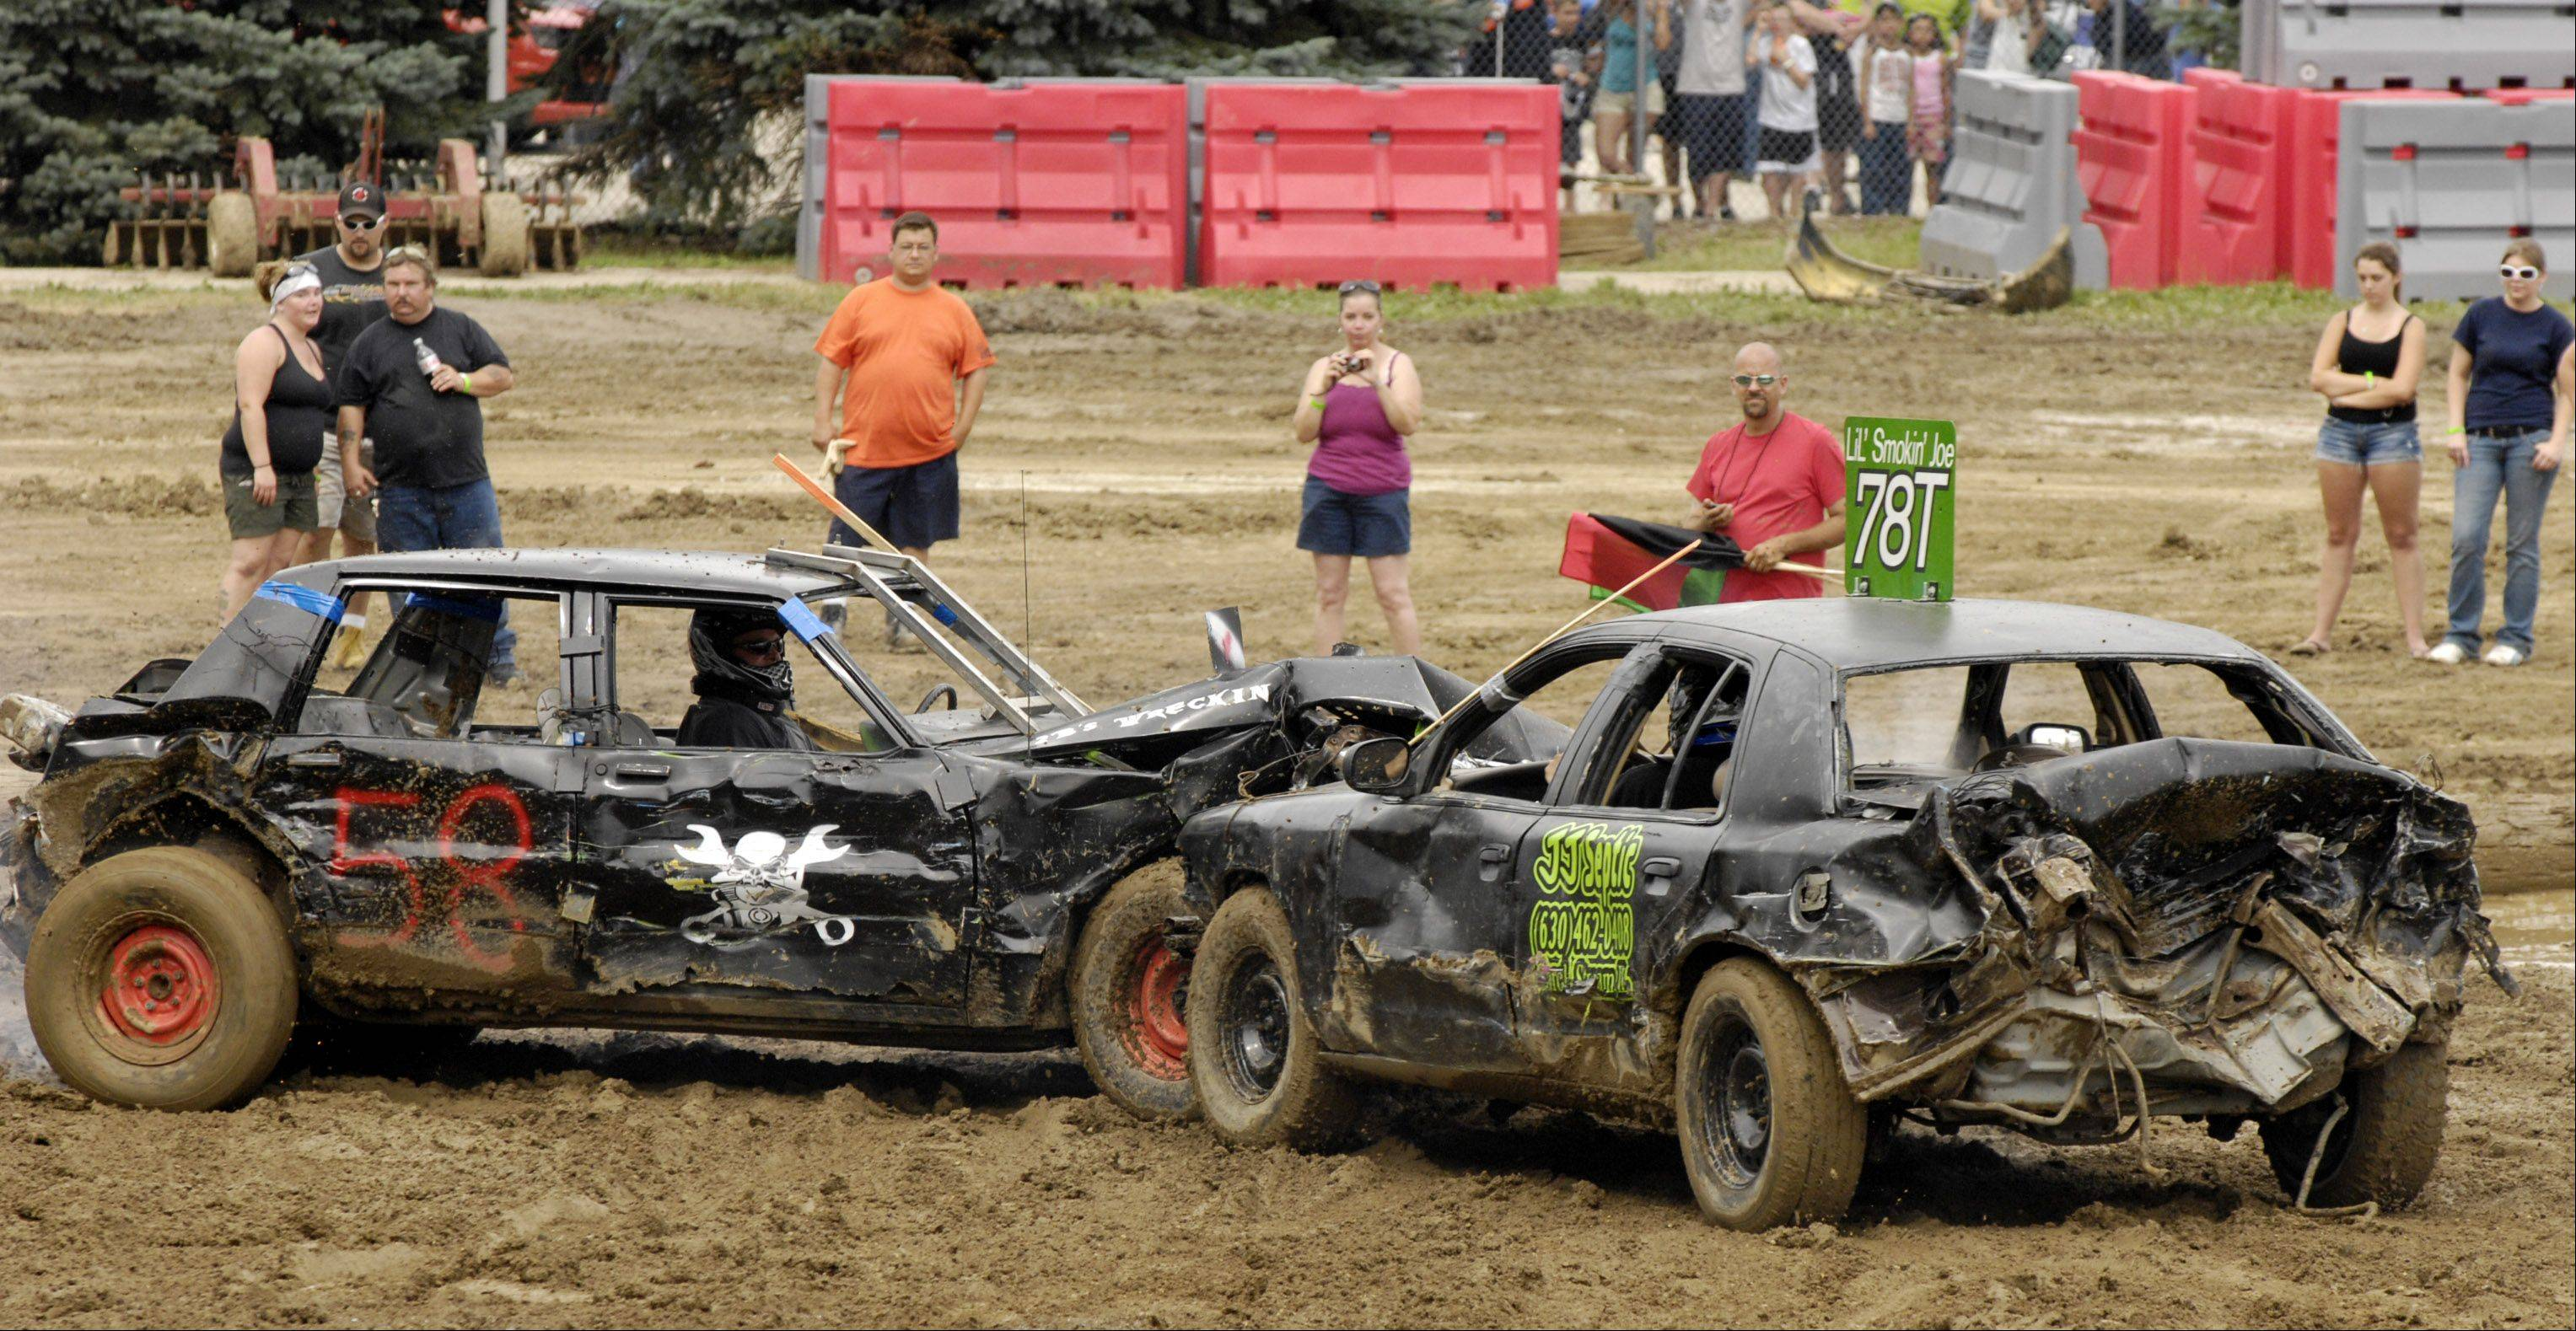 Brian Ellingsworth of Plainfield and Joseph Jackson of Carol Stream battle it out for first place in the demolition derby on the final day of the 2011 Kane County Fair. Jackson of JJ Septic in Carol Stream won the derby.